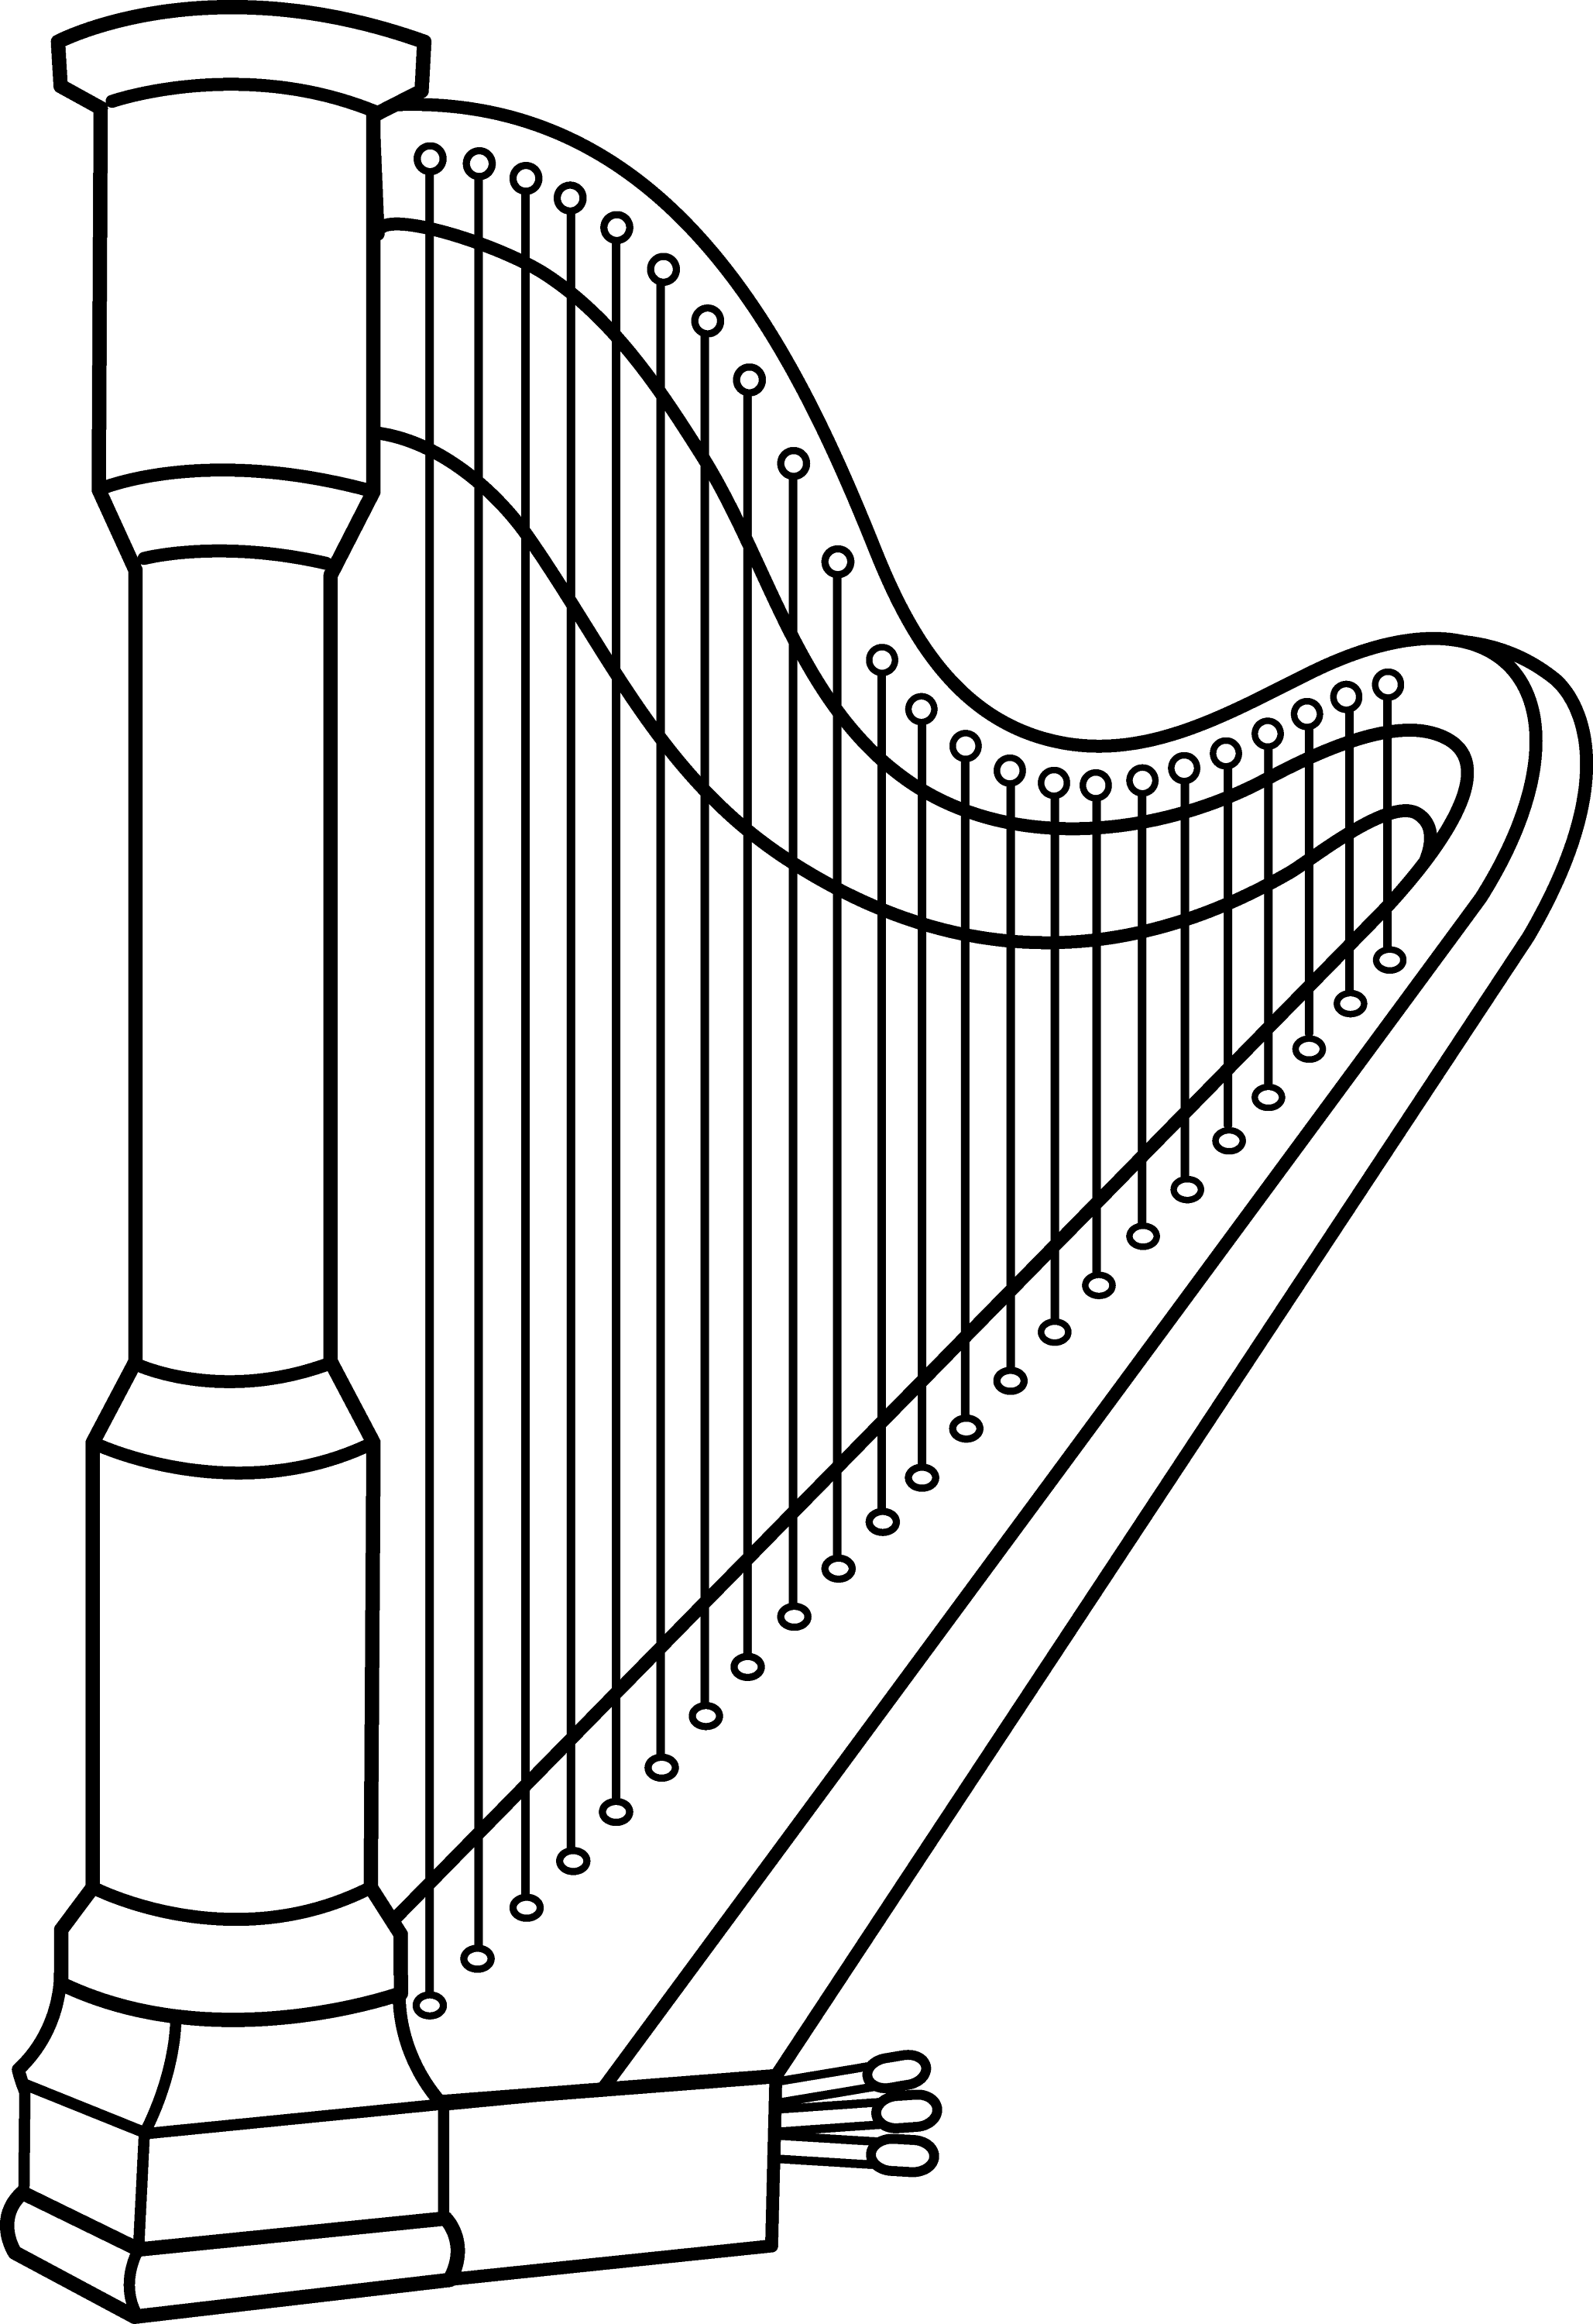 musical harp line art free clip art rh sweetclipart com golden harp clipart harp clipart black and white